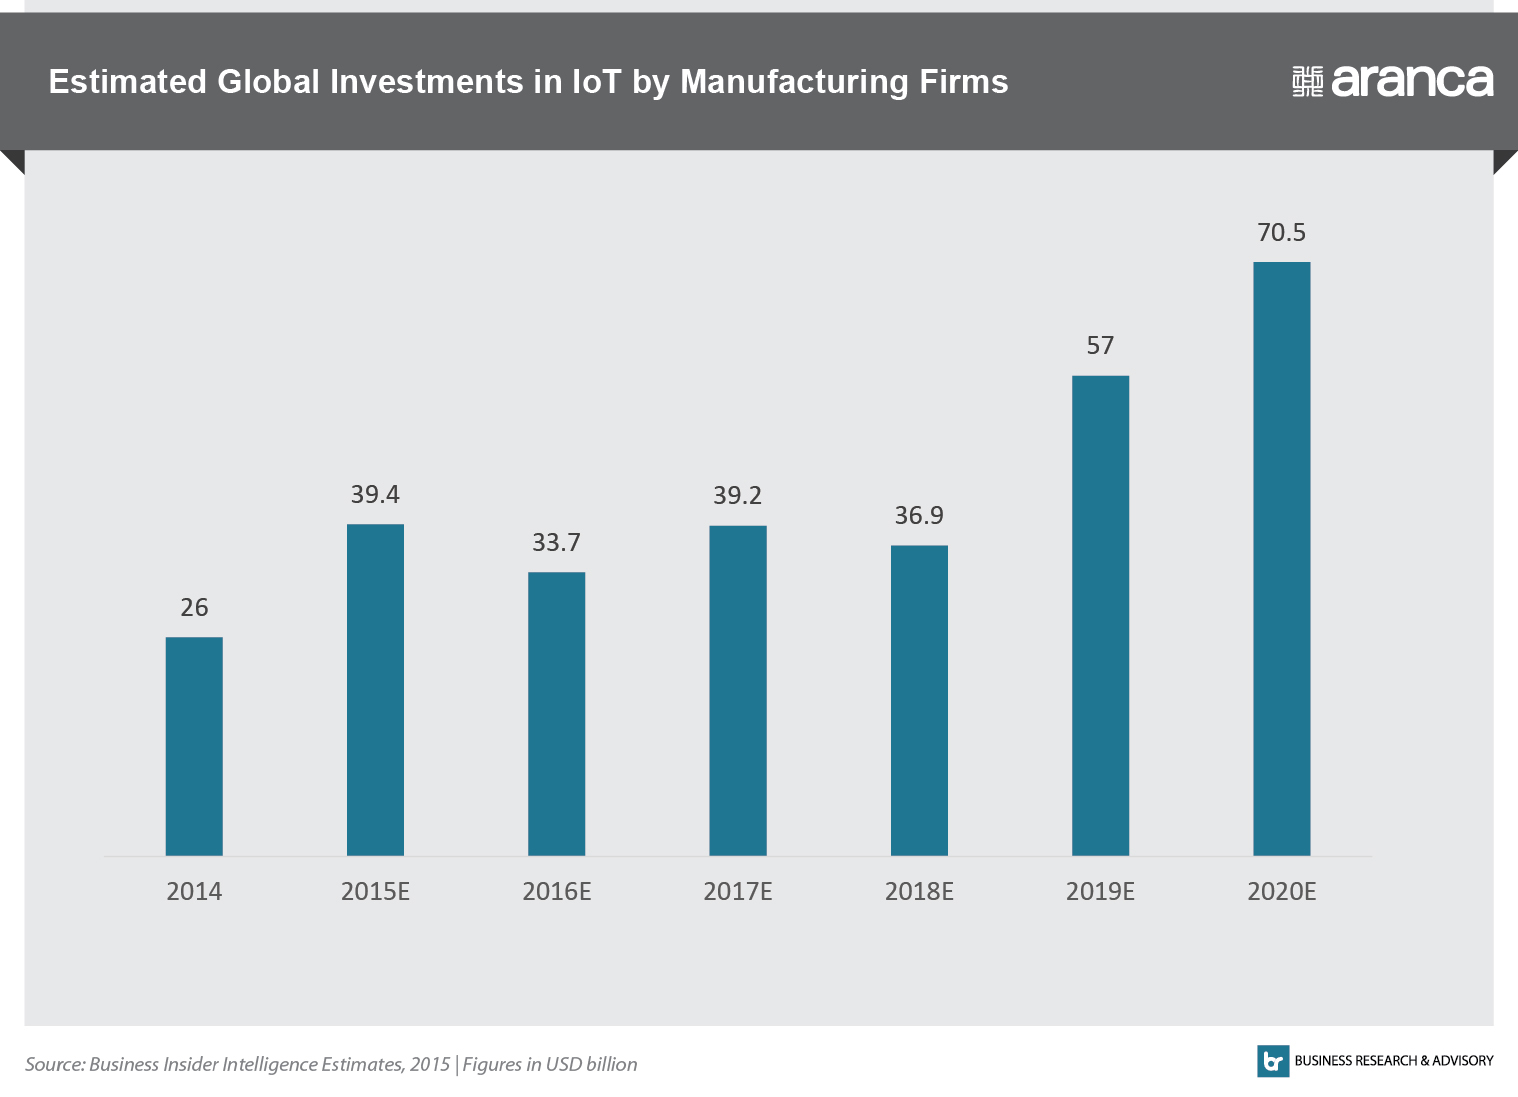 Estimated Global Investments in IoT by Manufacturing Firms